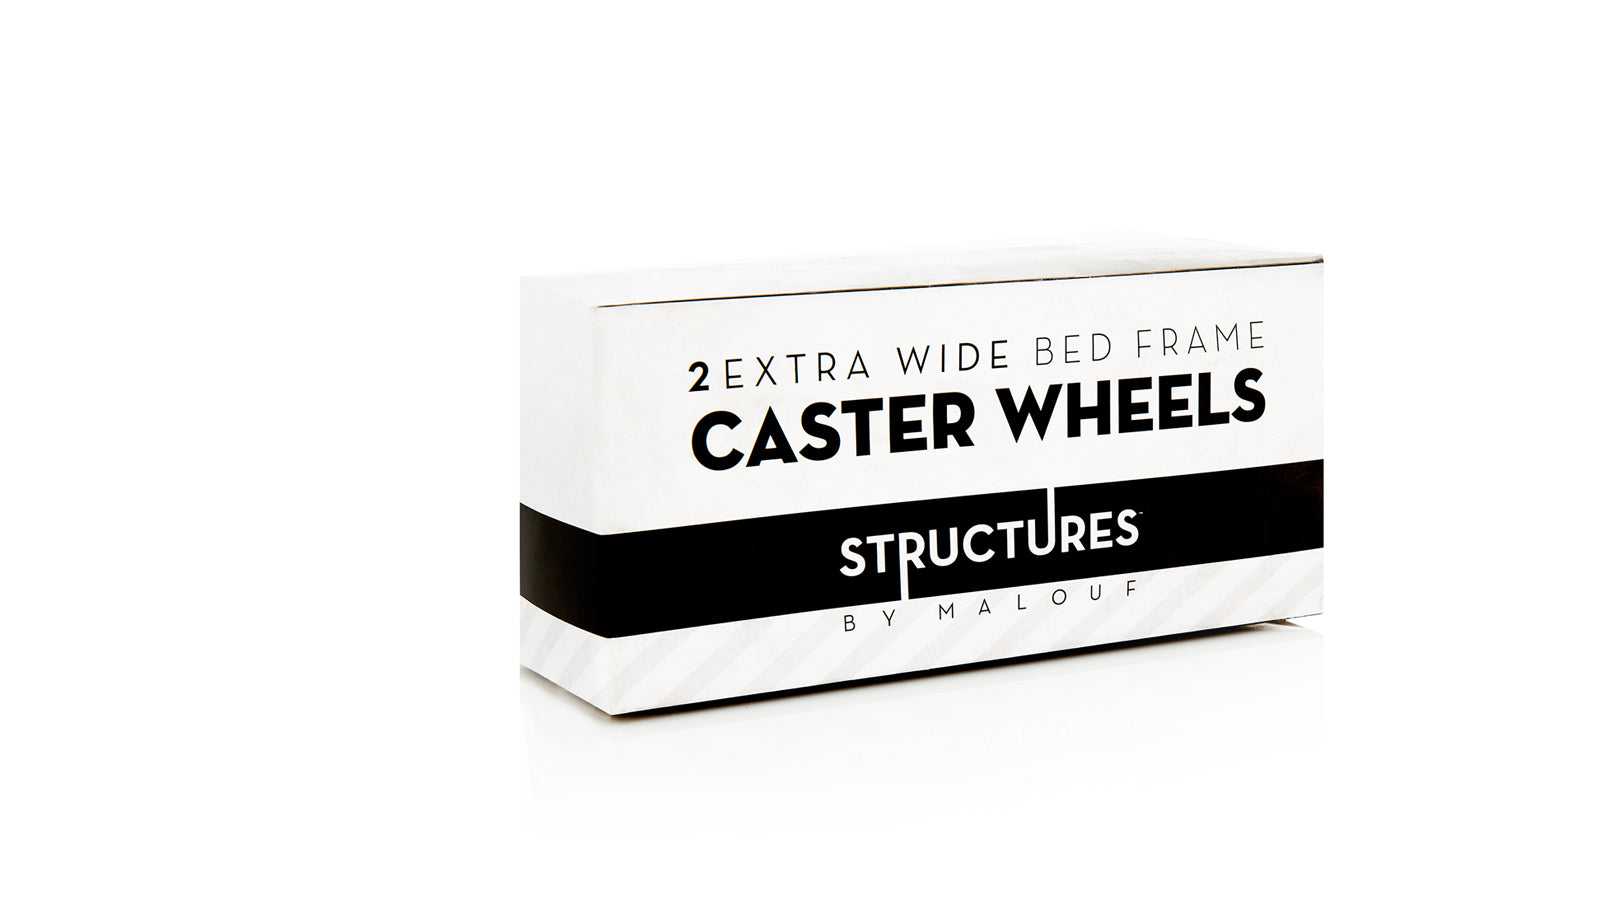 Caster Wheels - Ultimate Comfort Sleep